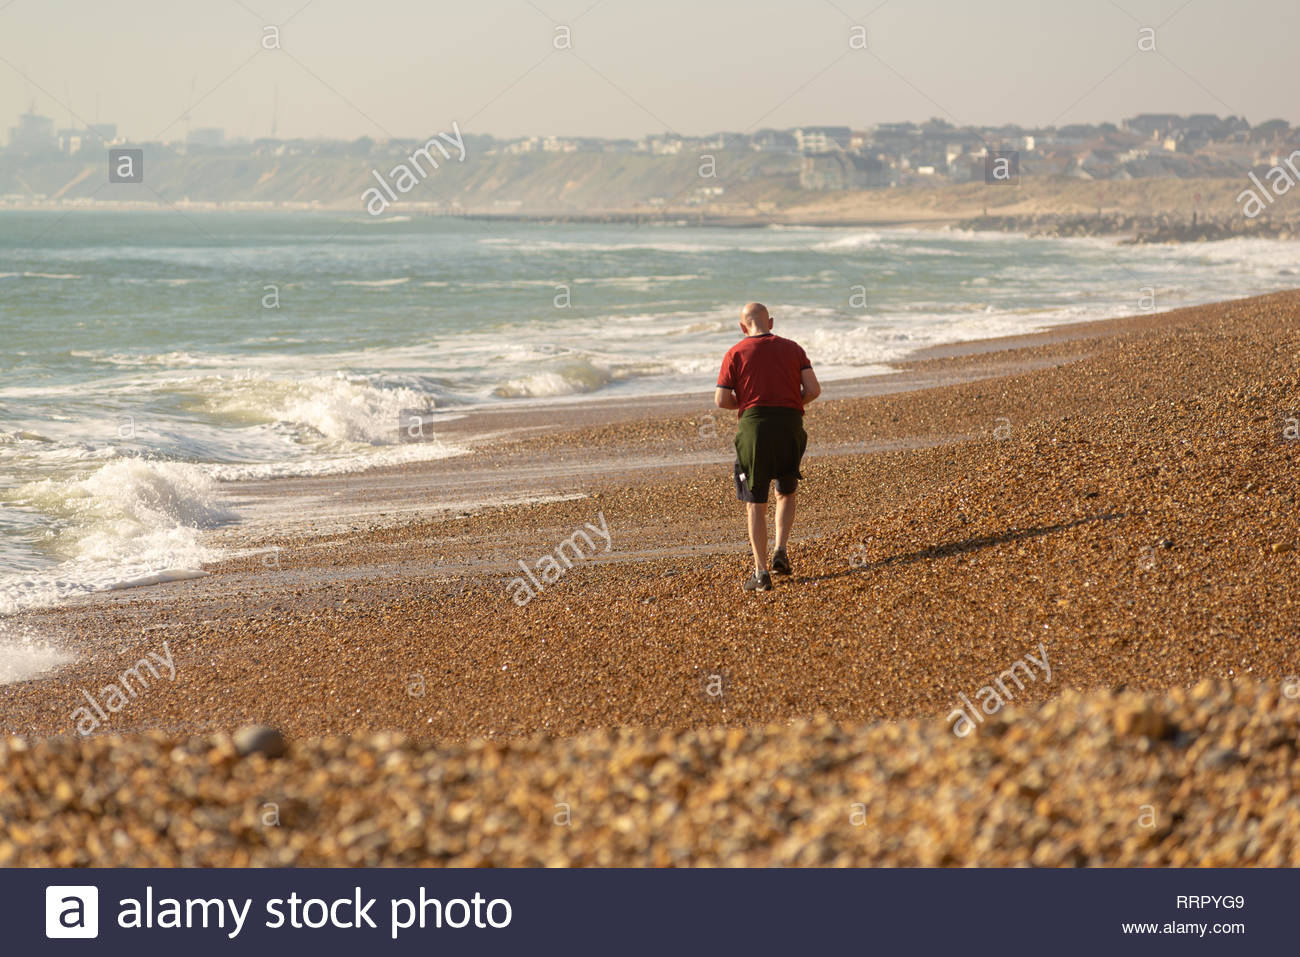 Hengistbury Head, Christchurch, Dorset, UK, 26th February 2019, Weather: A man in t-shirt and shorts walks along the pebbly beach of the coastal spit this afternoon in unusually high temperatures for February. Even with an onshore breeze, with warm air coming up from the south, 15 degrees centigrade has been reached in this record breaking spell of winter weather for the UK. Credit: Paul Biggins/Alamy Live News - Stock Image